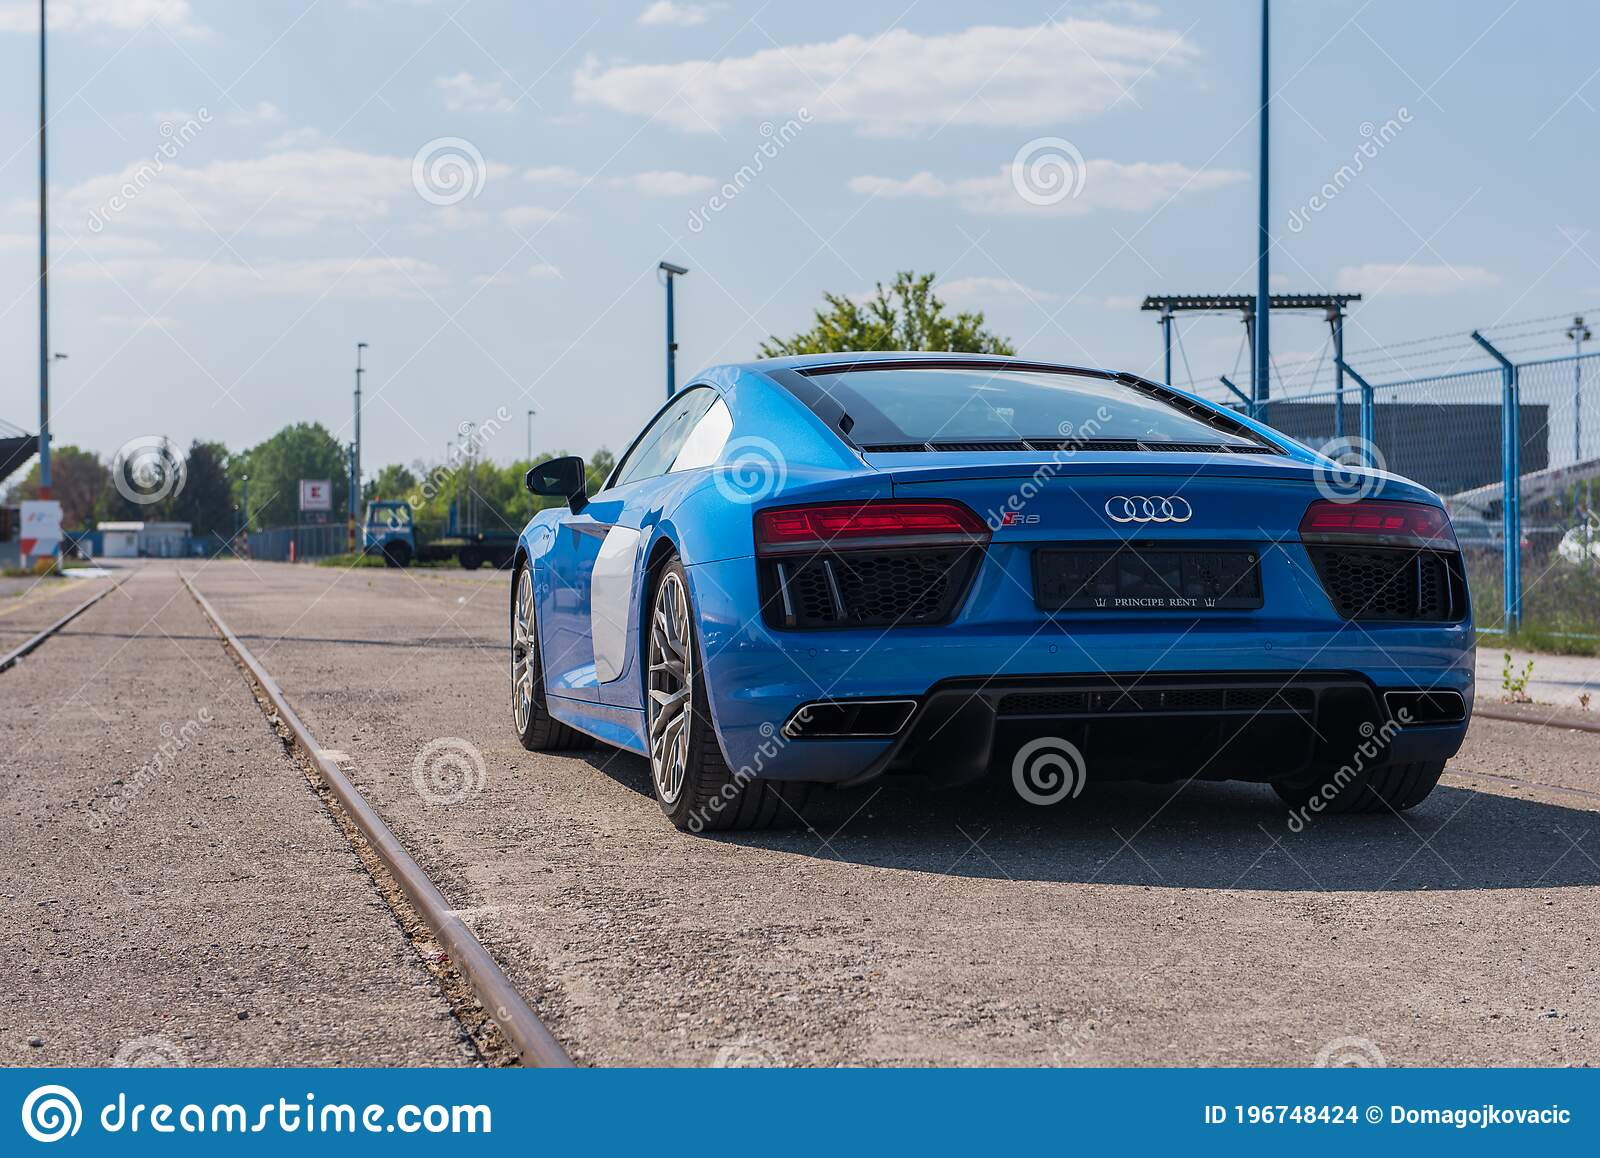 Audi R8 V10 In Blue Colour Audi Sports Car Editorial Stock Image Image Of Technology Urban 196748424